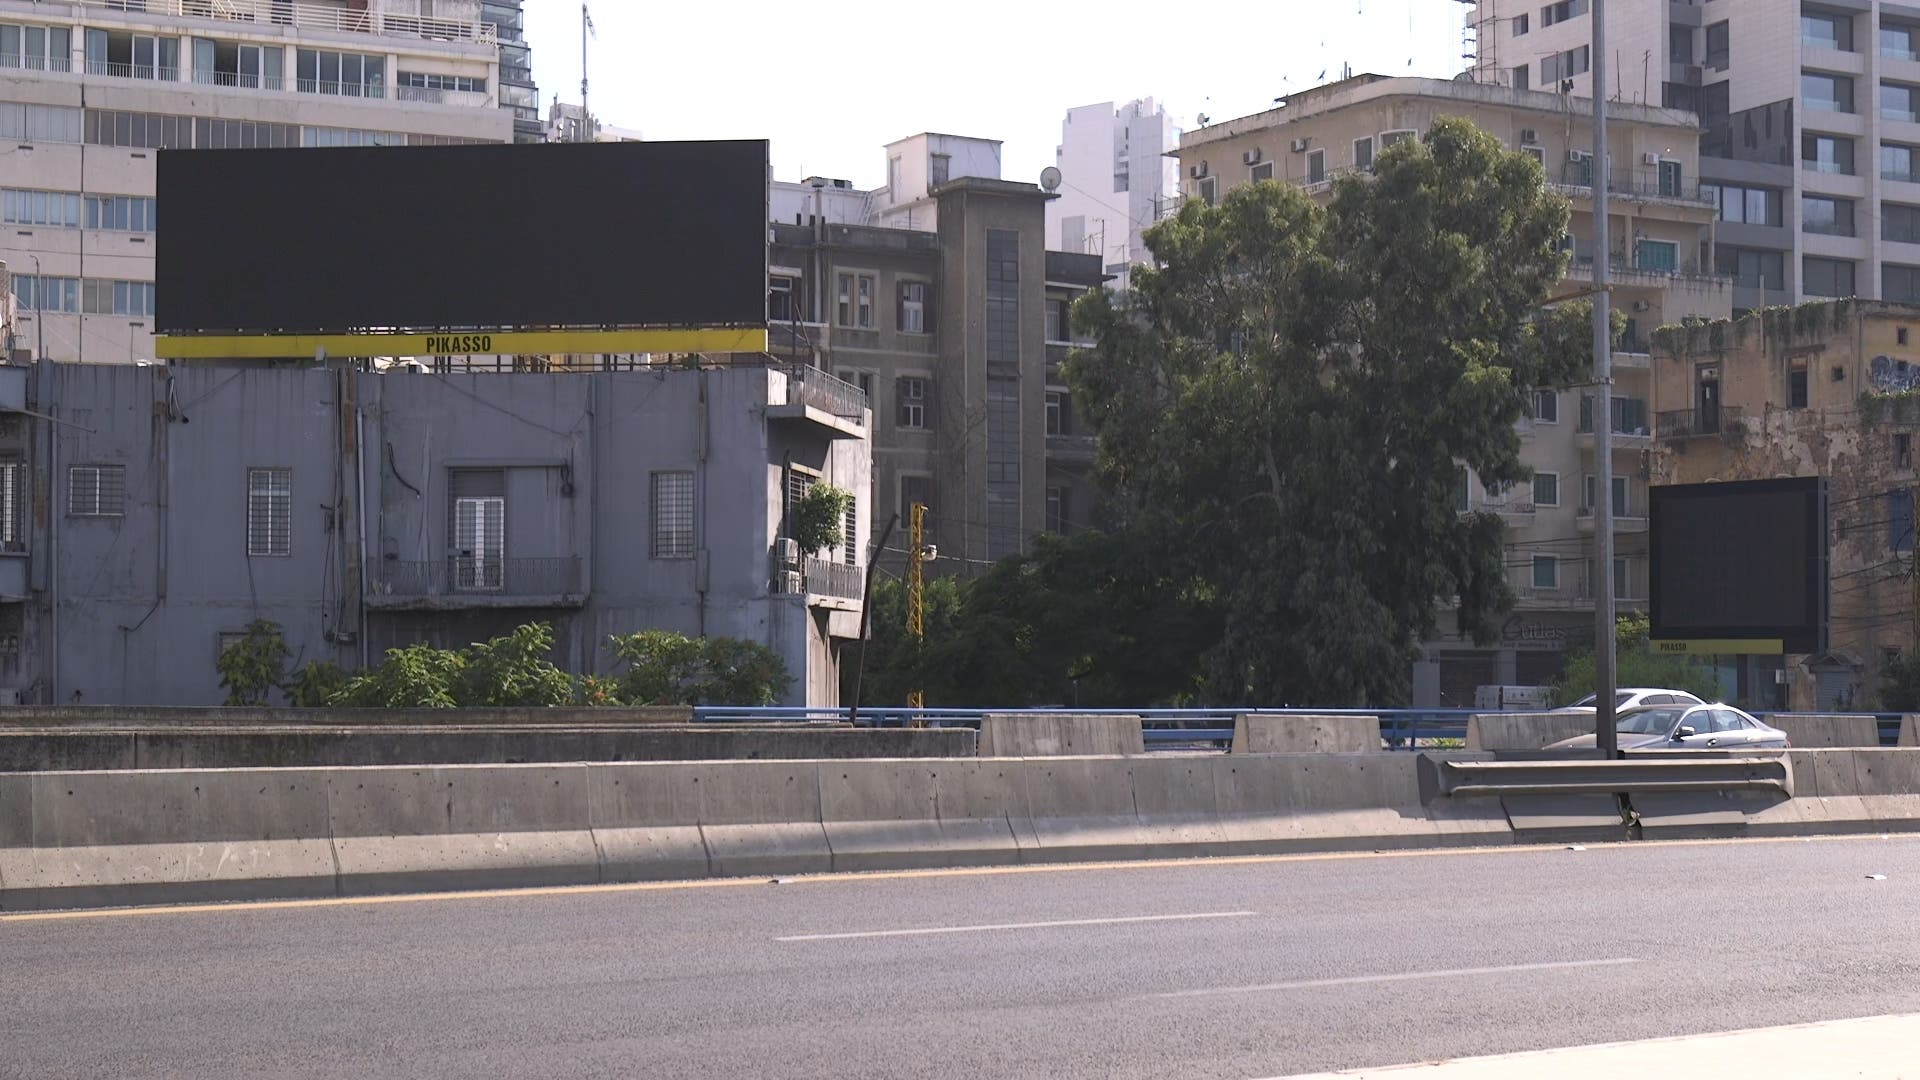 A blank billboard is shown in Lebanon amid the ongoing economic crisis that has been exacerbated by the coronavirus pandemic. (Screengrab)